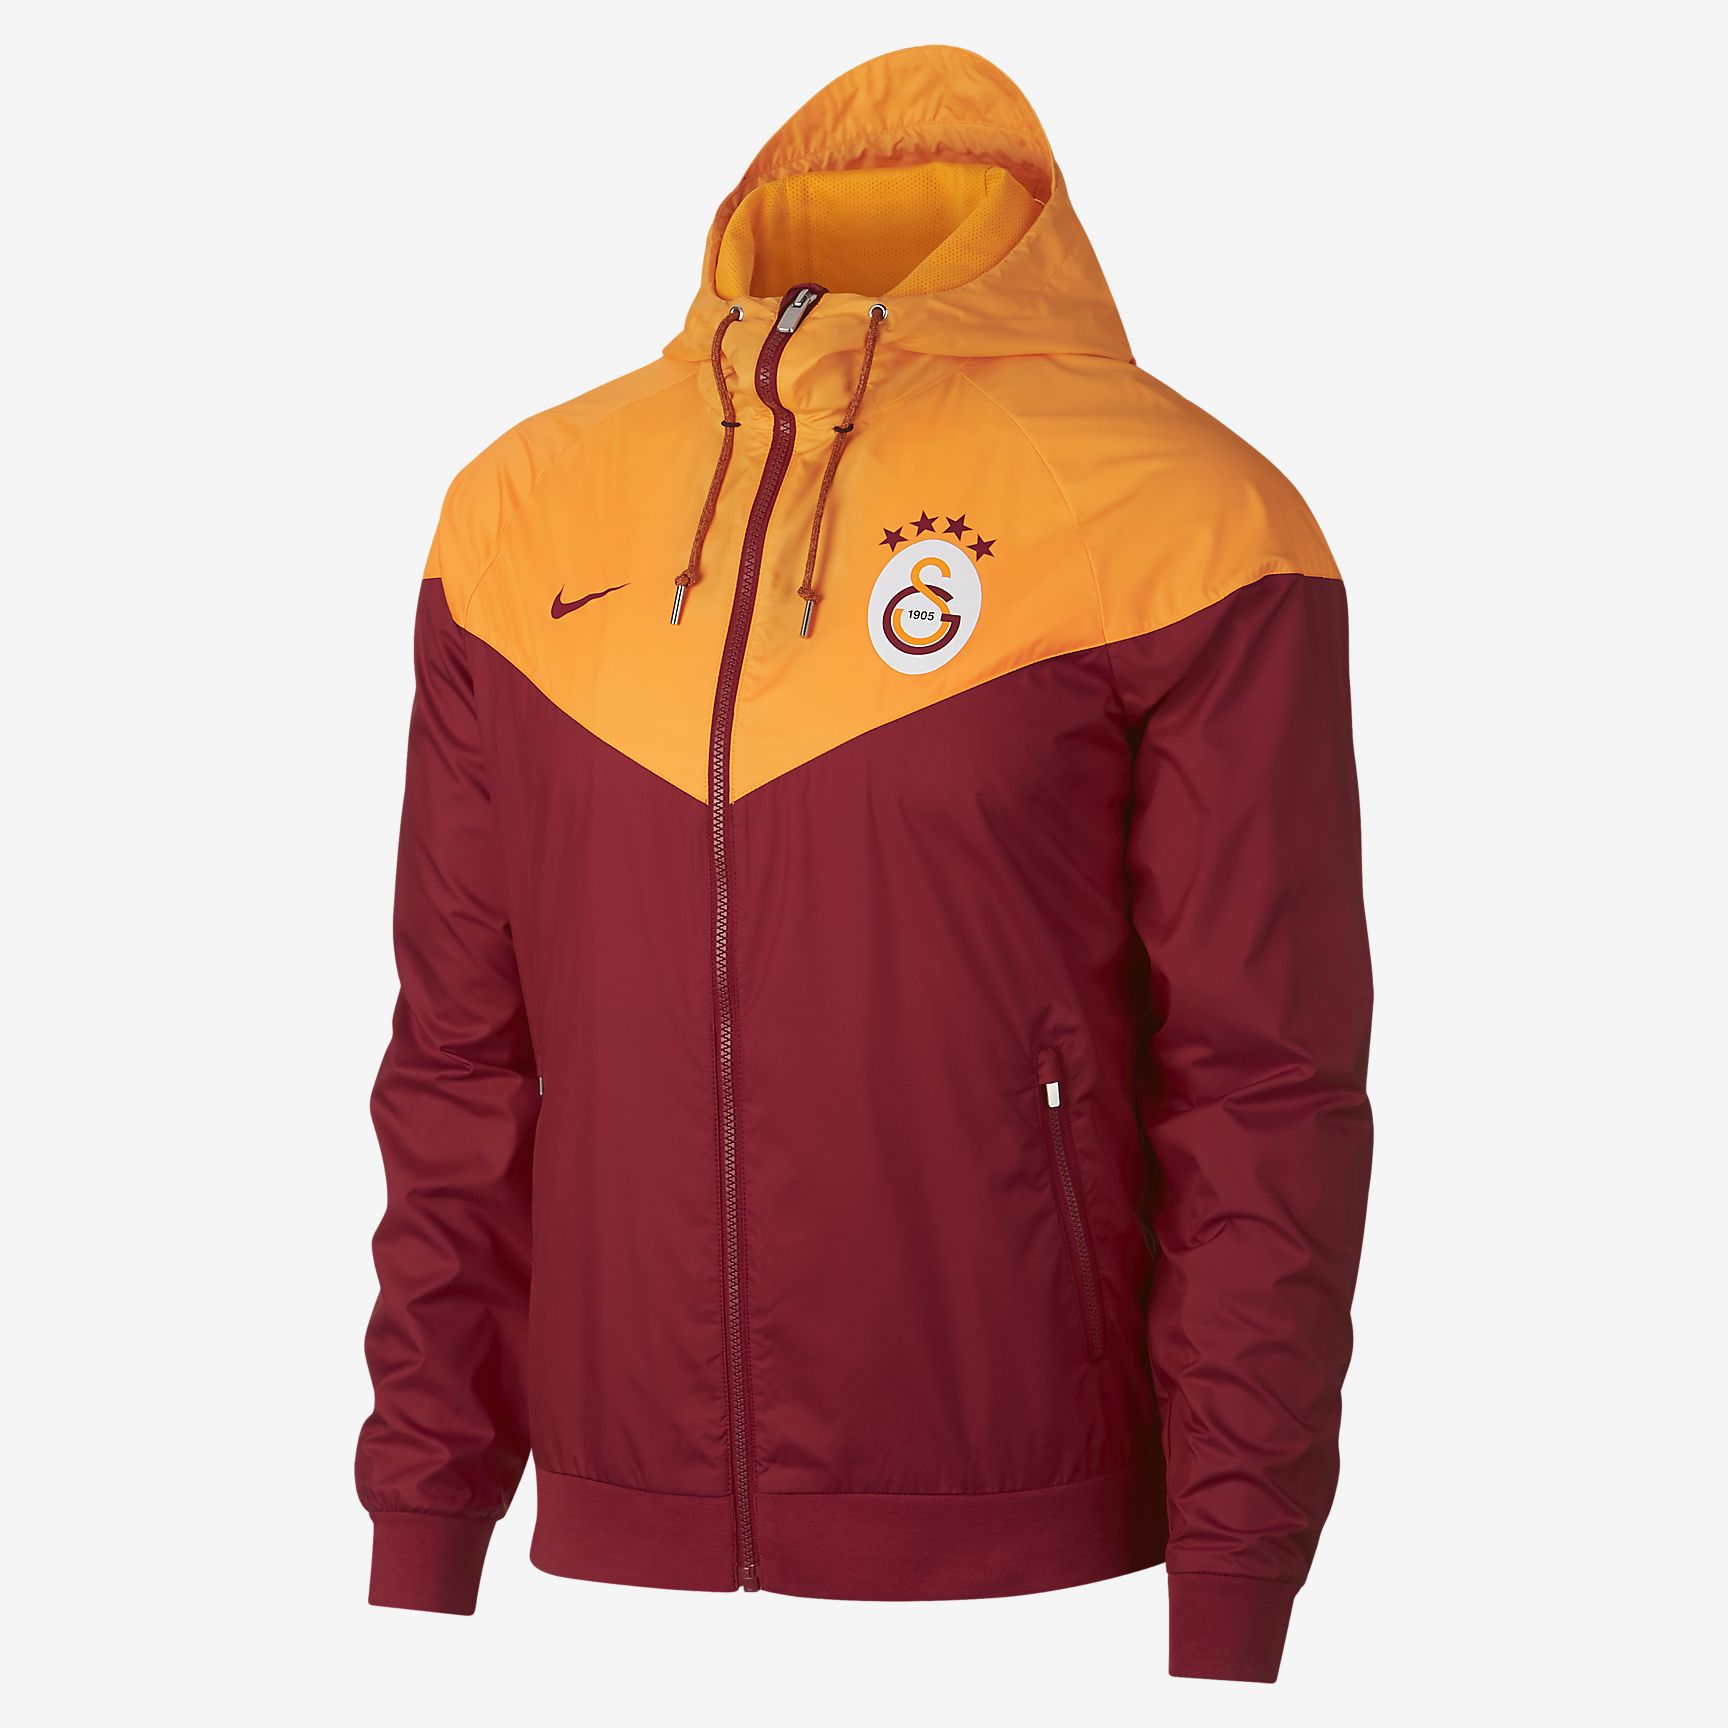 https://c.static-nike.com/a/images/t_PDP_1728_v1/f_auto/nysttrtwehx6mgqjw8rw/galatasaray-sk-windrunner-jacket-PsgdZD.jpg